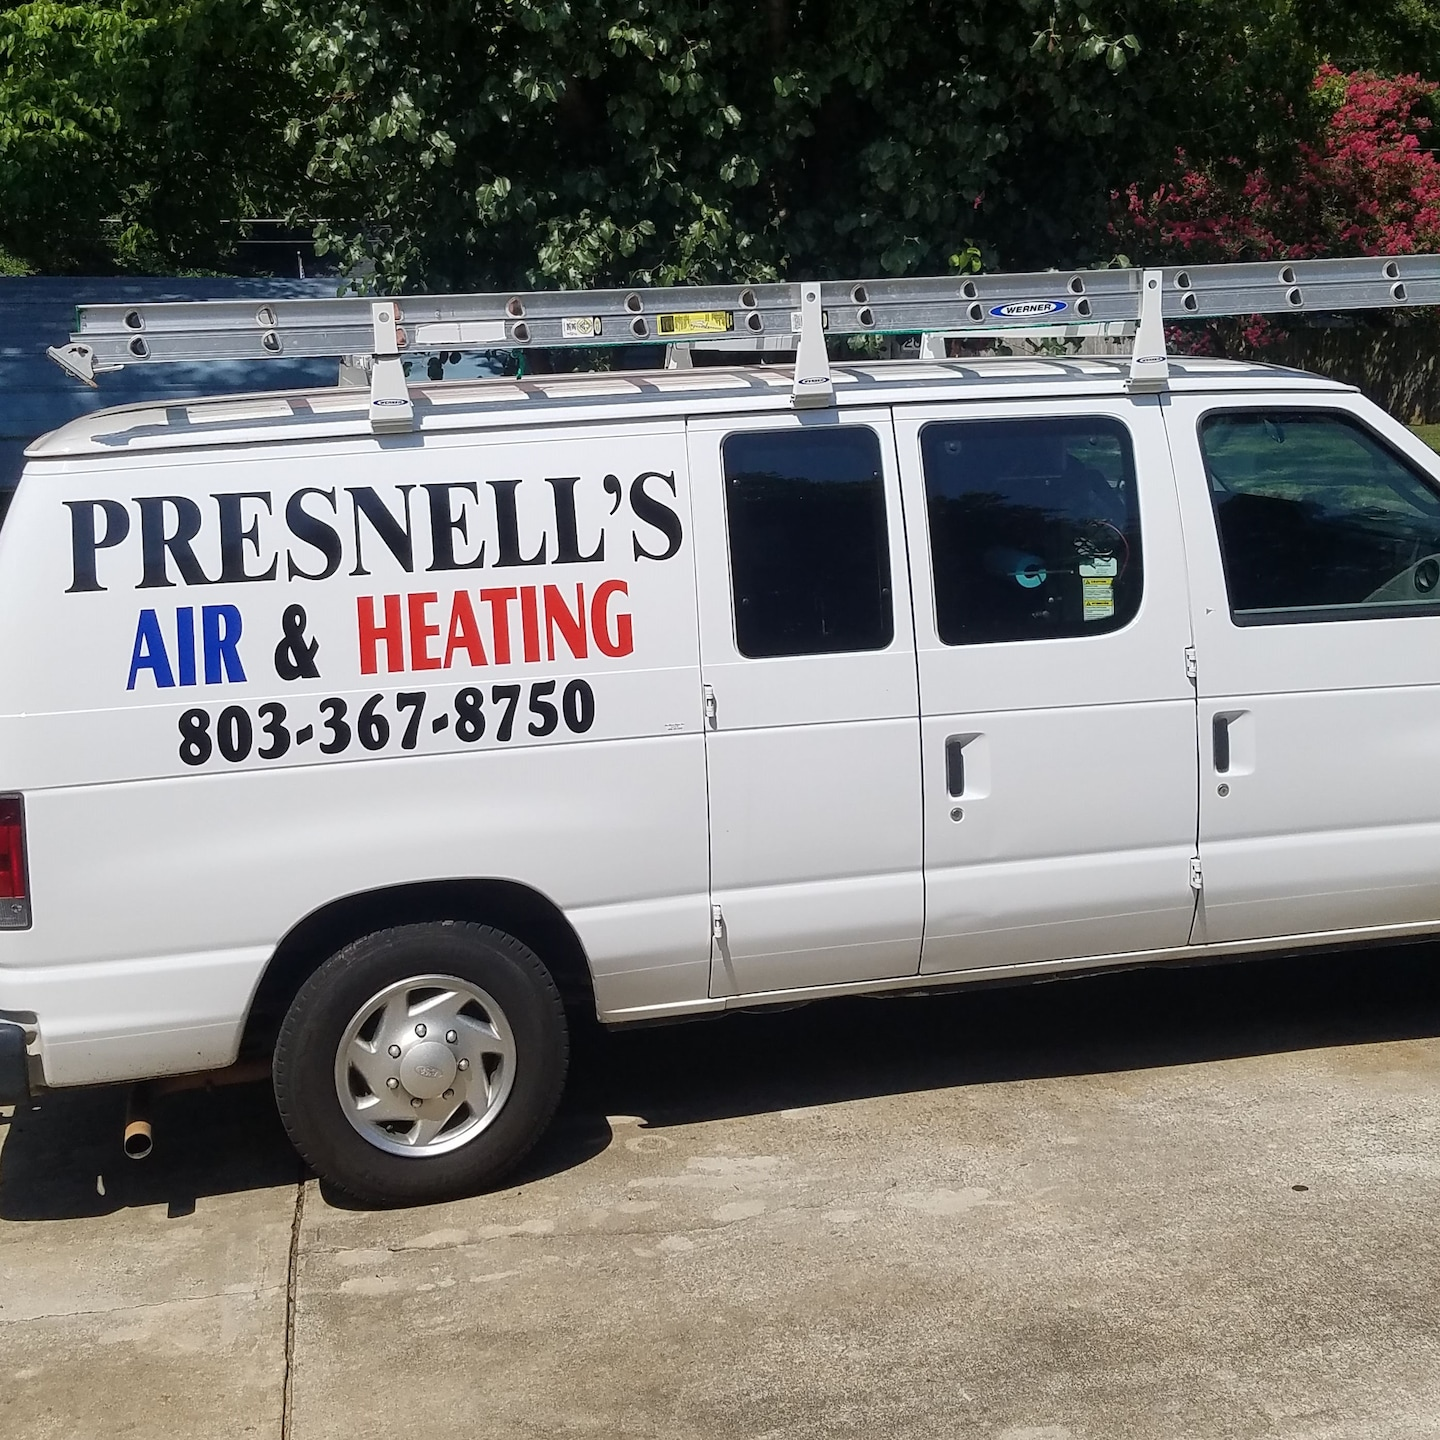 Presnells Air & Heat